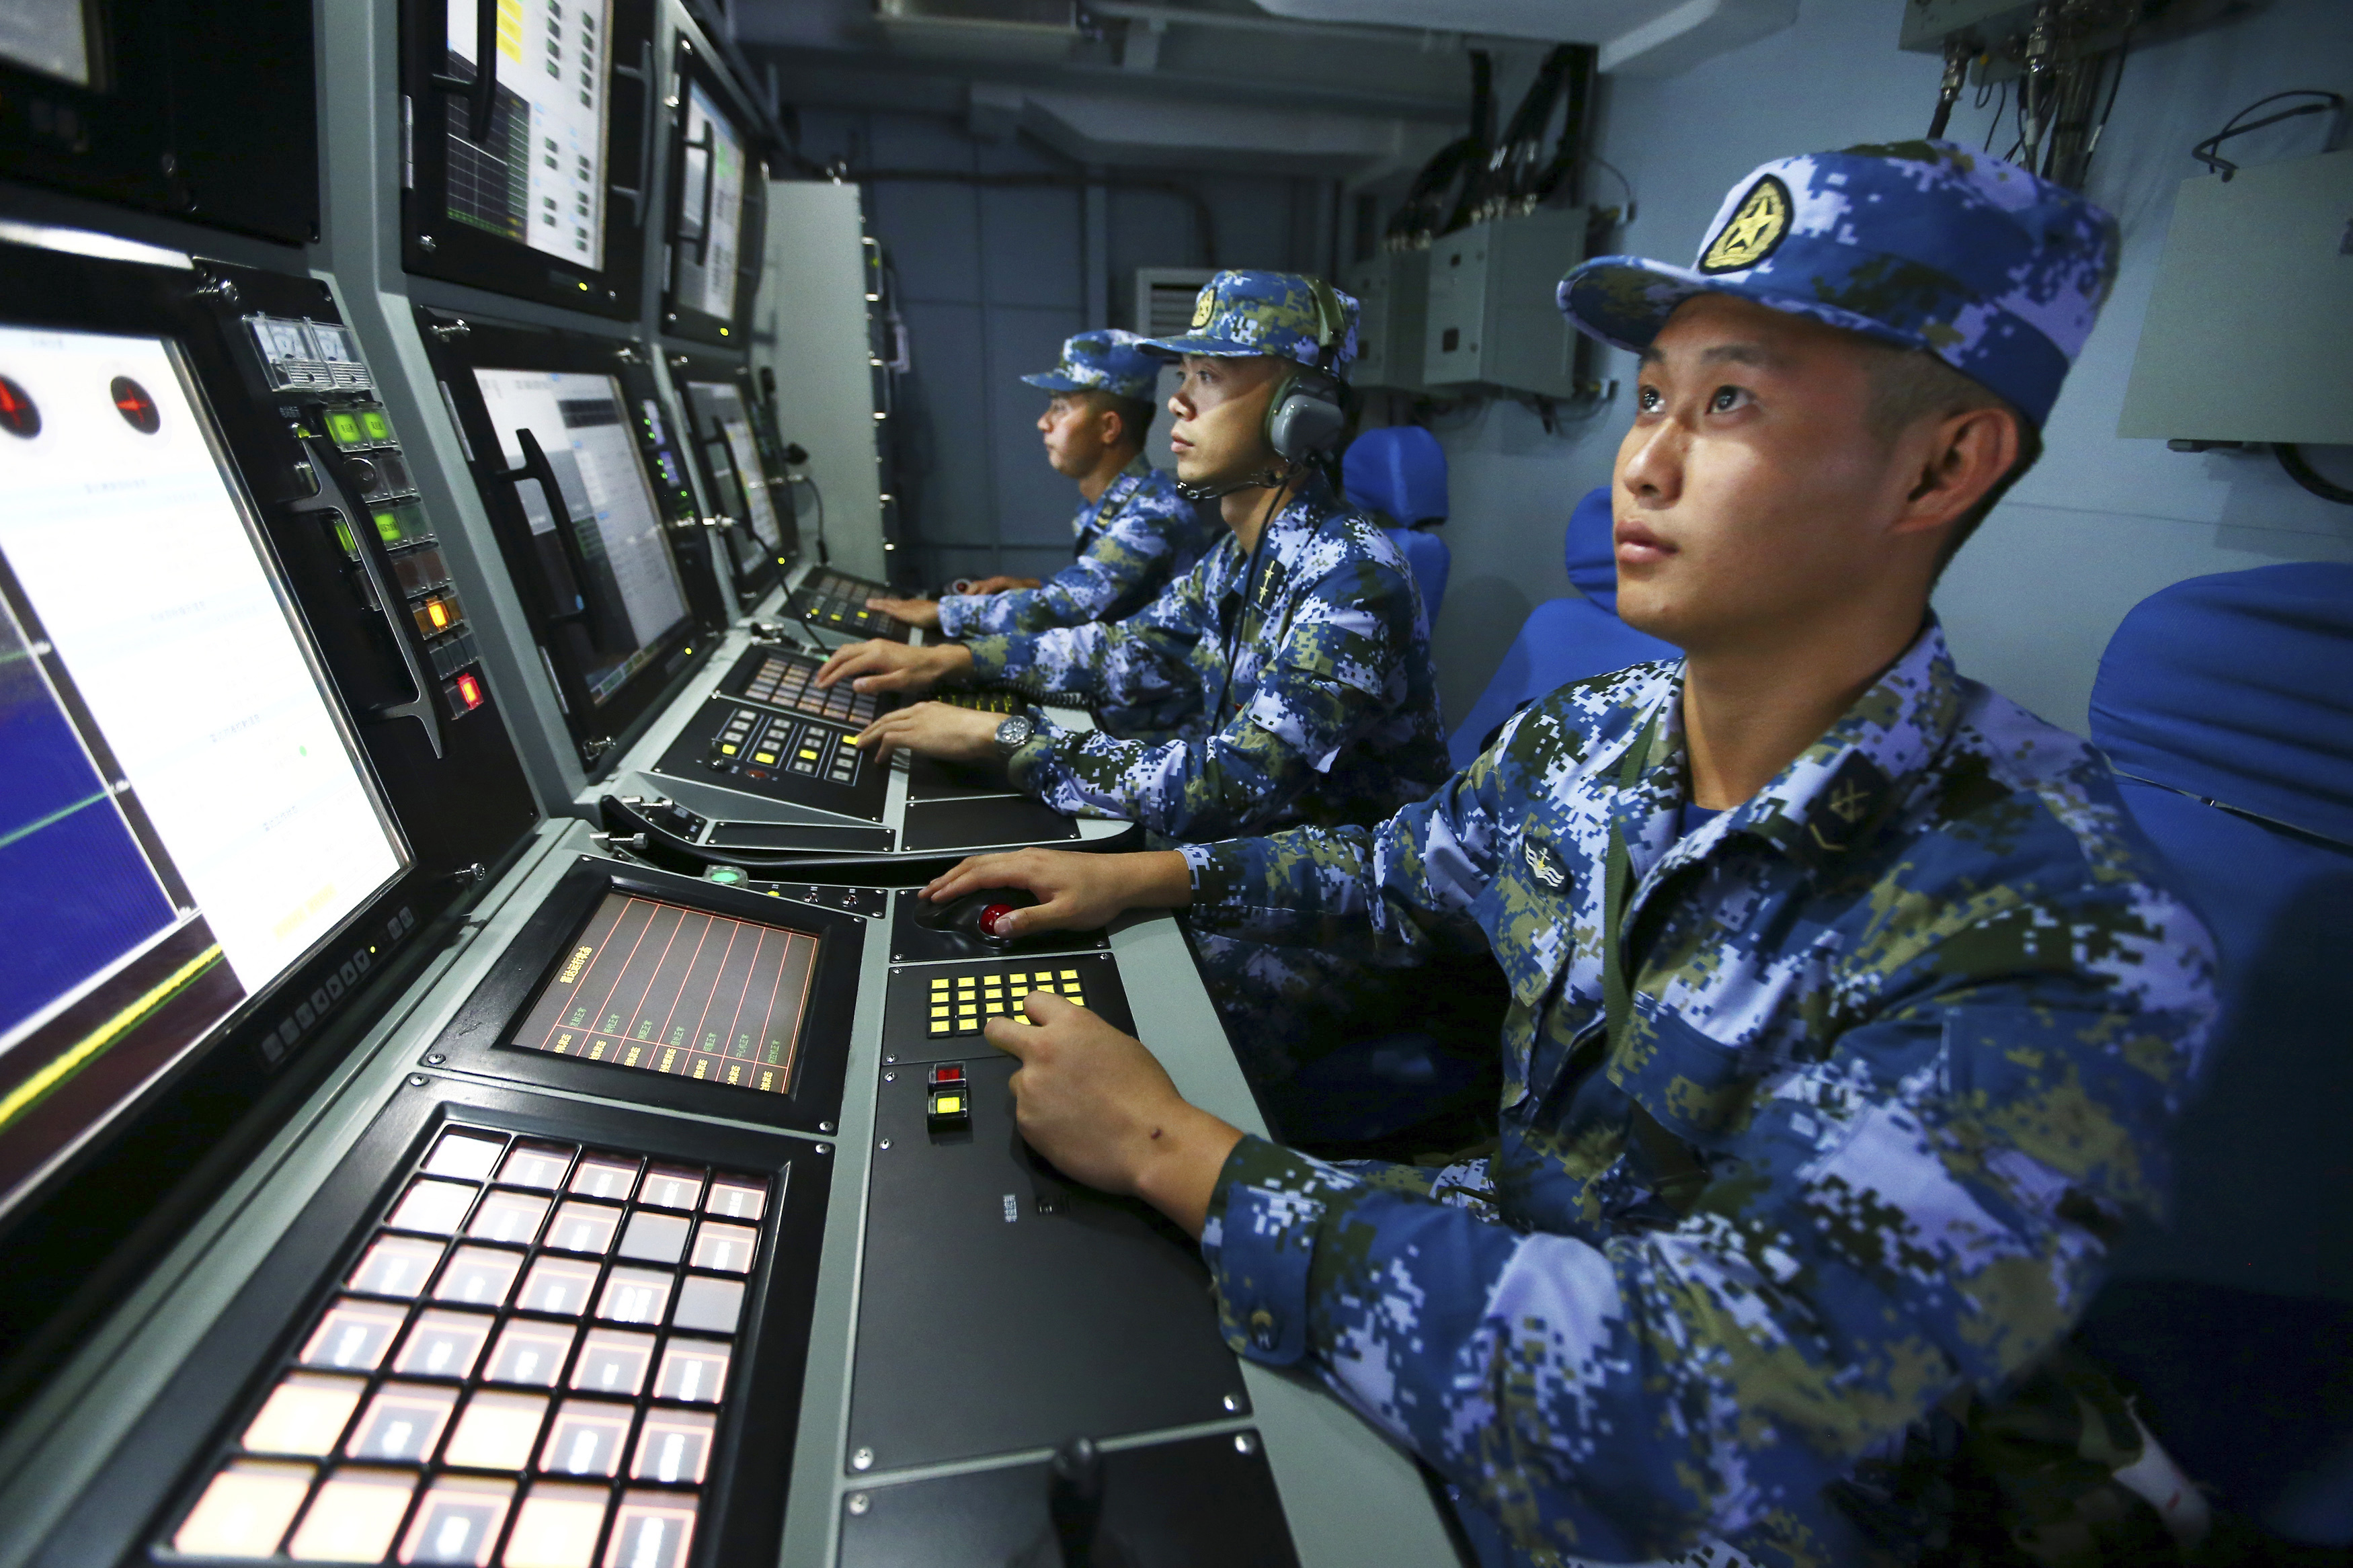 Chinese navy sailors search for targets onboard the missile destroyer Hefei during a military exercise in the waters near south China's Hainan Island and Paracel Islands on July 8, 2016. (Zha Chunming/Xinhua via AP)